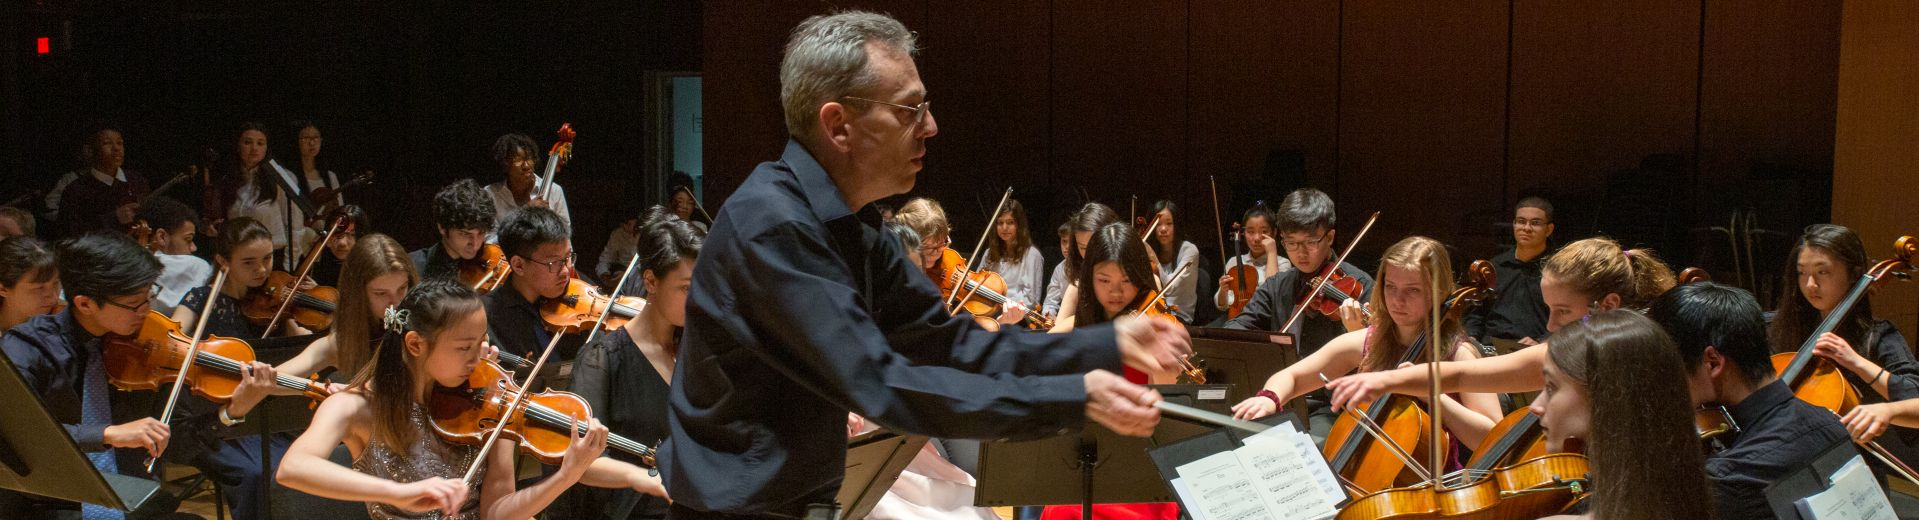 Conductor leading string orchestra at the Temple Performing Arts Center